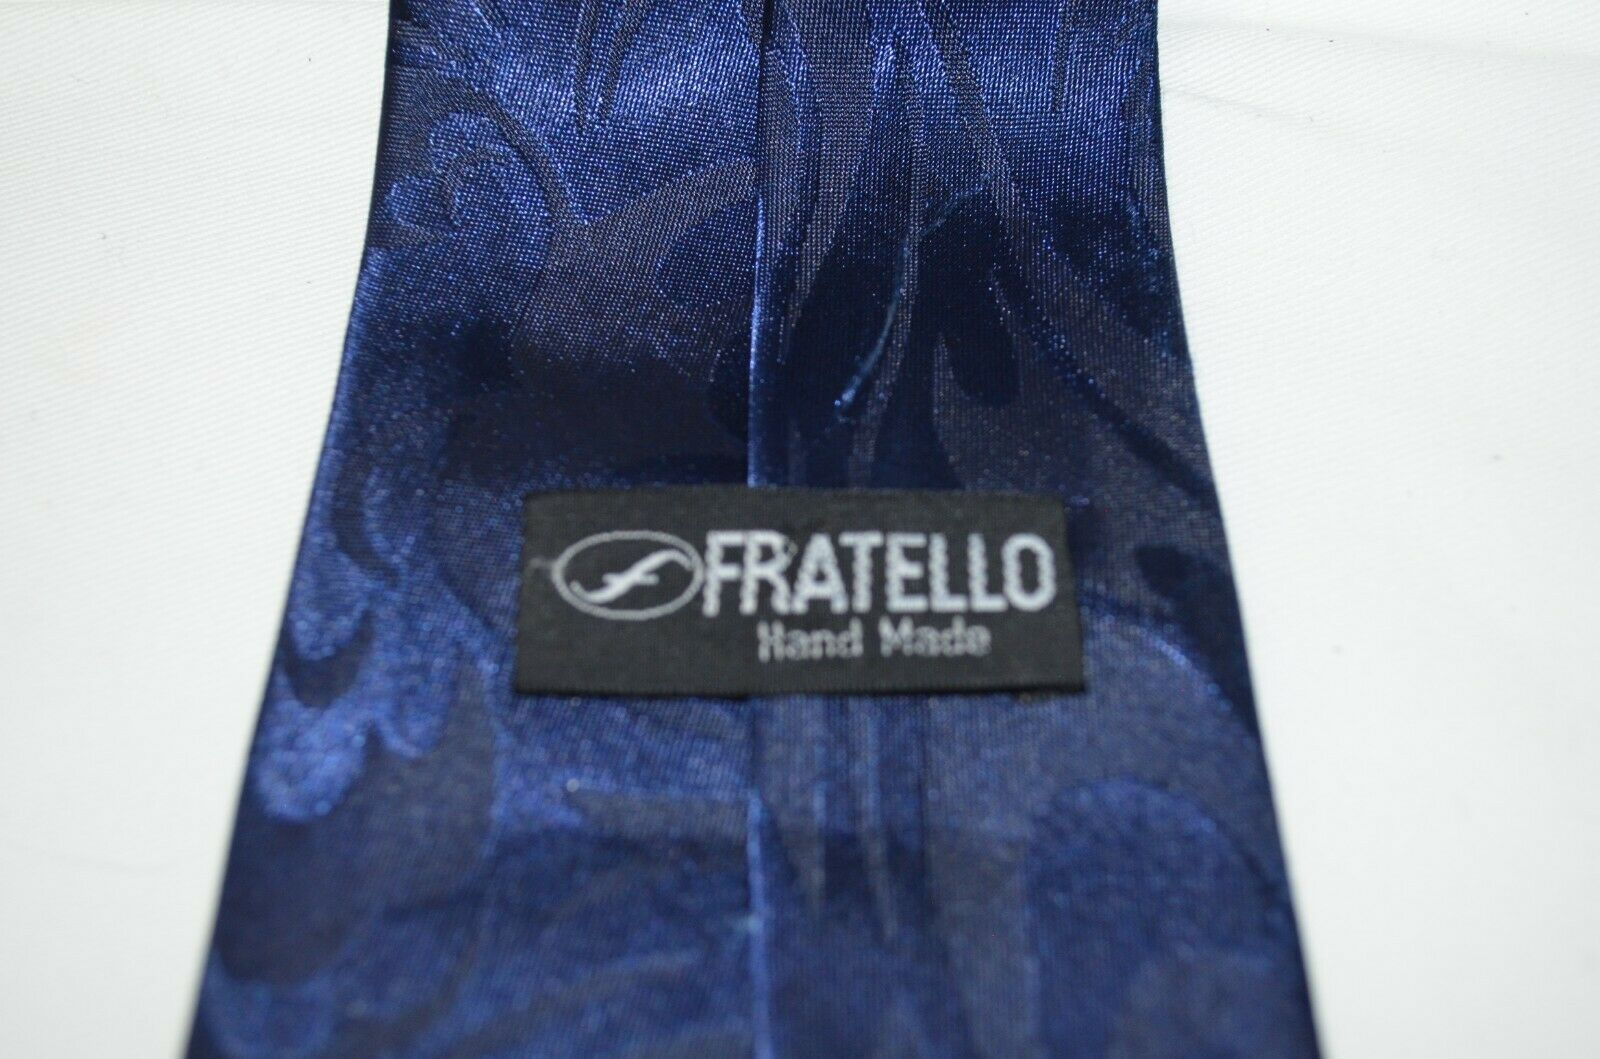 Cross Holy Bible Necktie Tie Religious Jesus Fratello Hand Made Blue Maroon  image 3